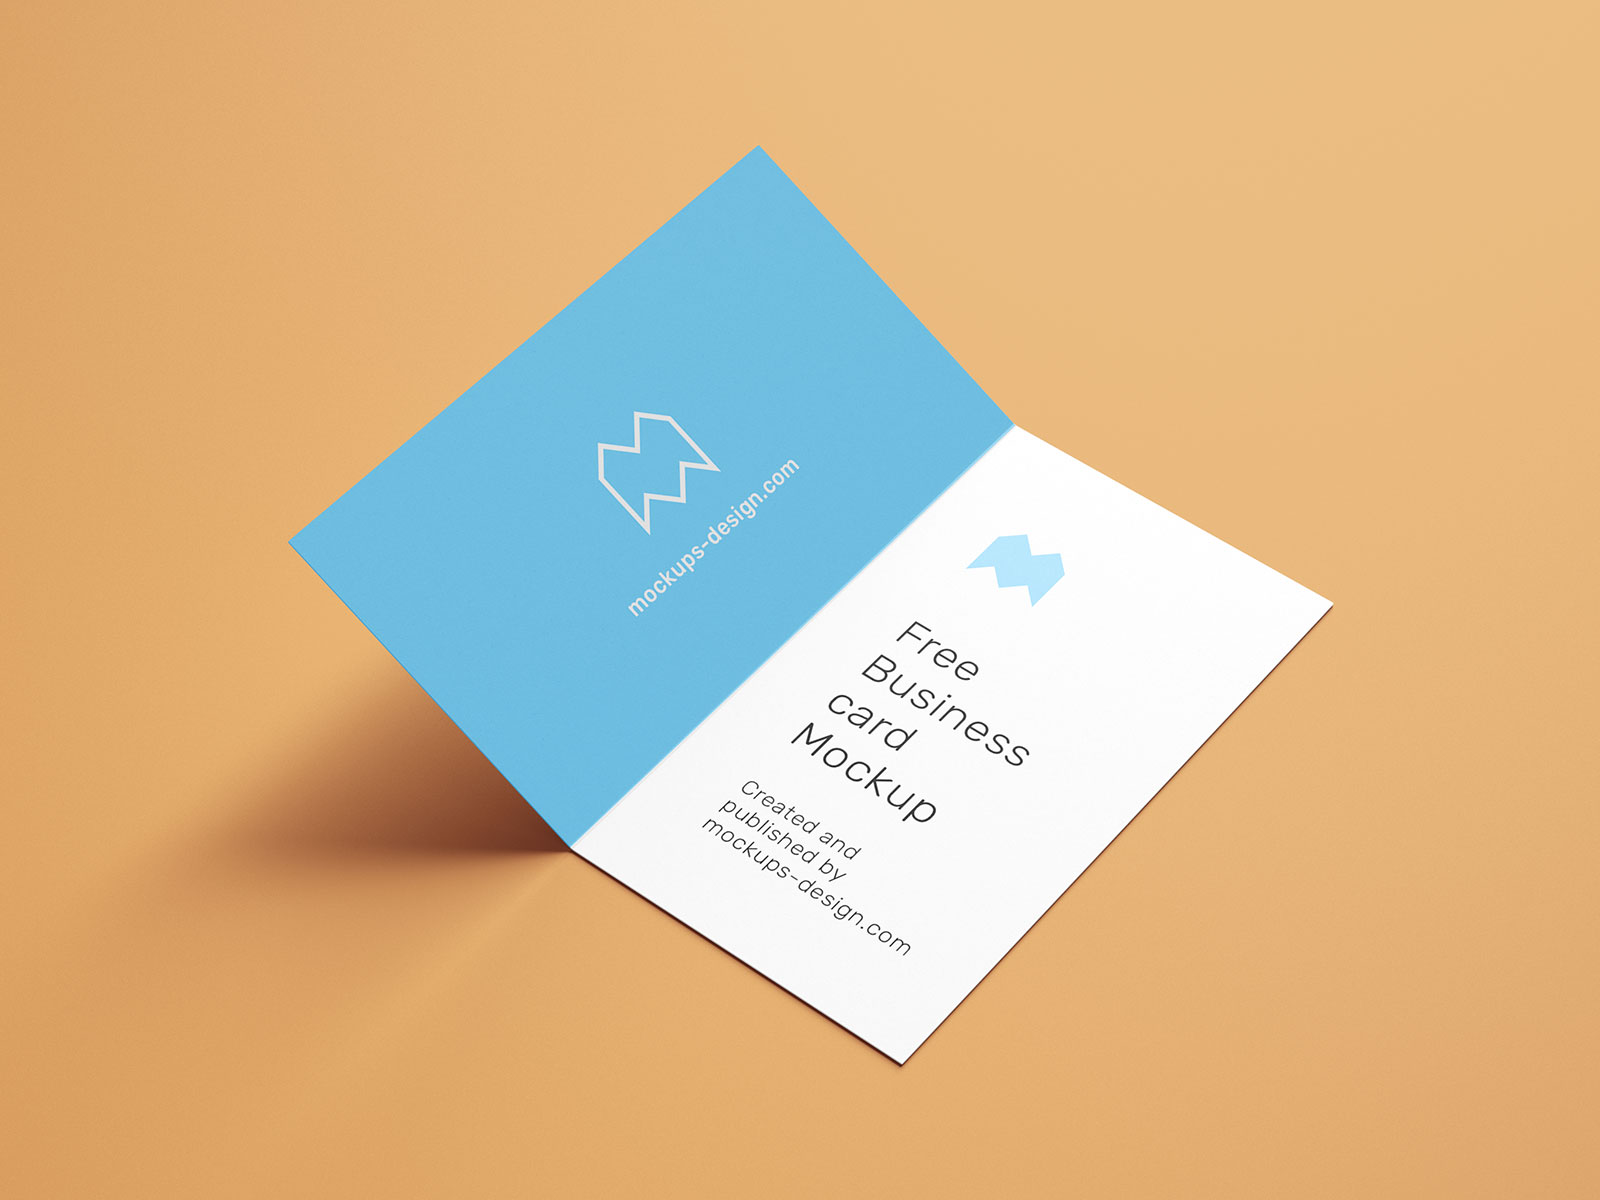 Free-Vertical-Folded-Business-Card-Mockup-PSD-Set-6